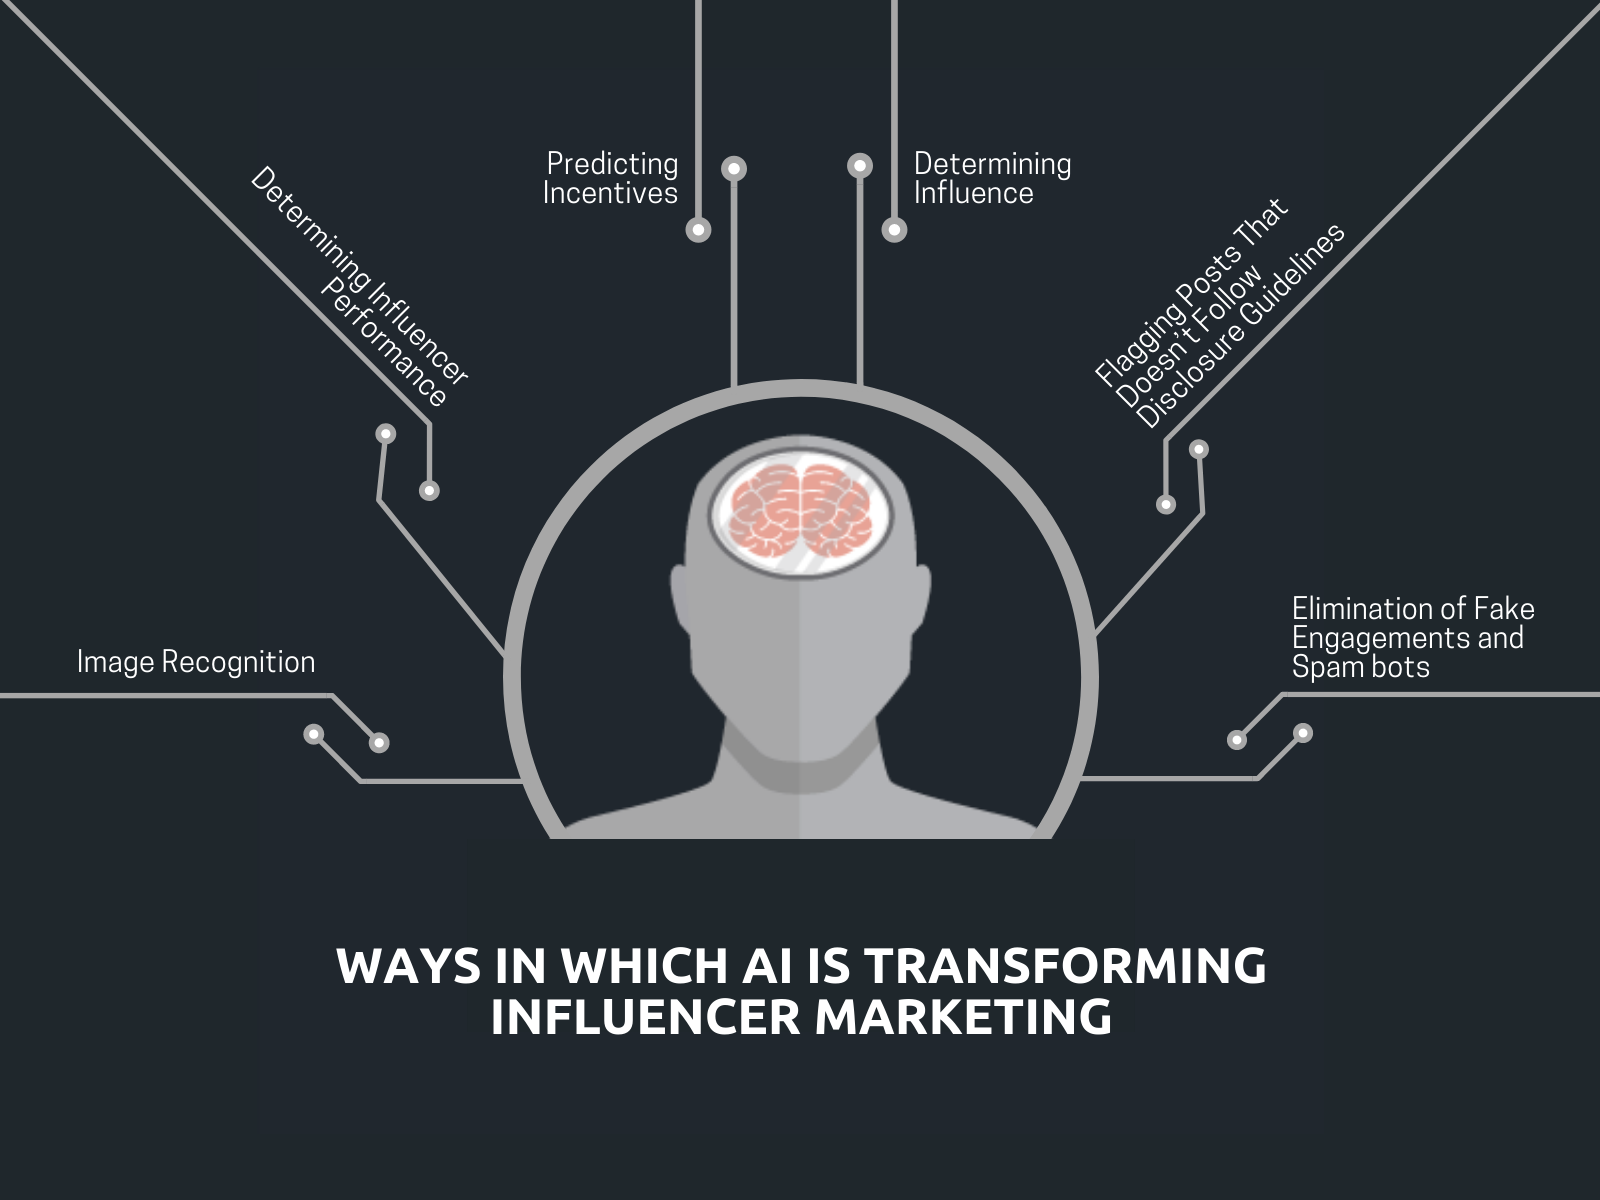 WAYS IN WHICH AI IS TRANSFORMING INFLUENCER MARKETING